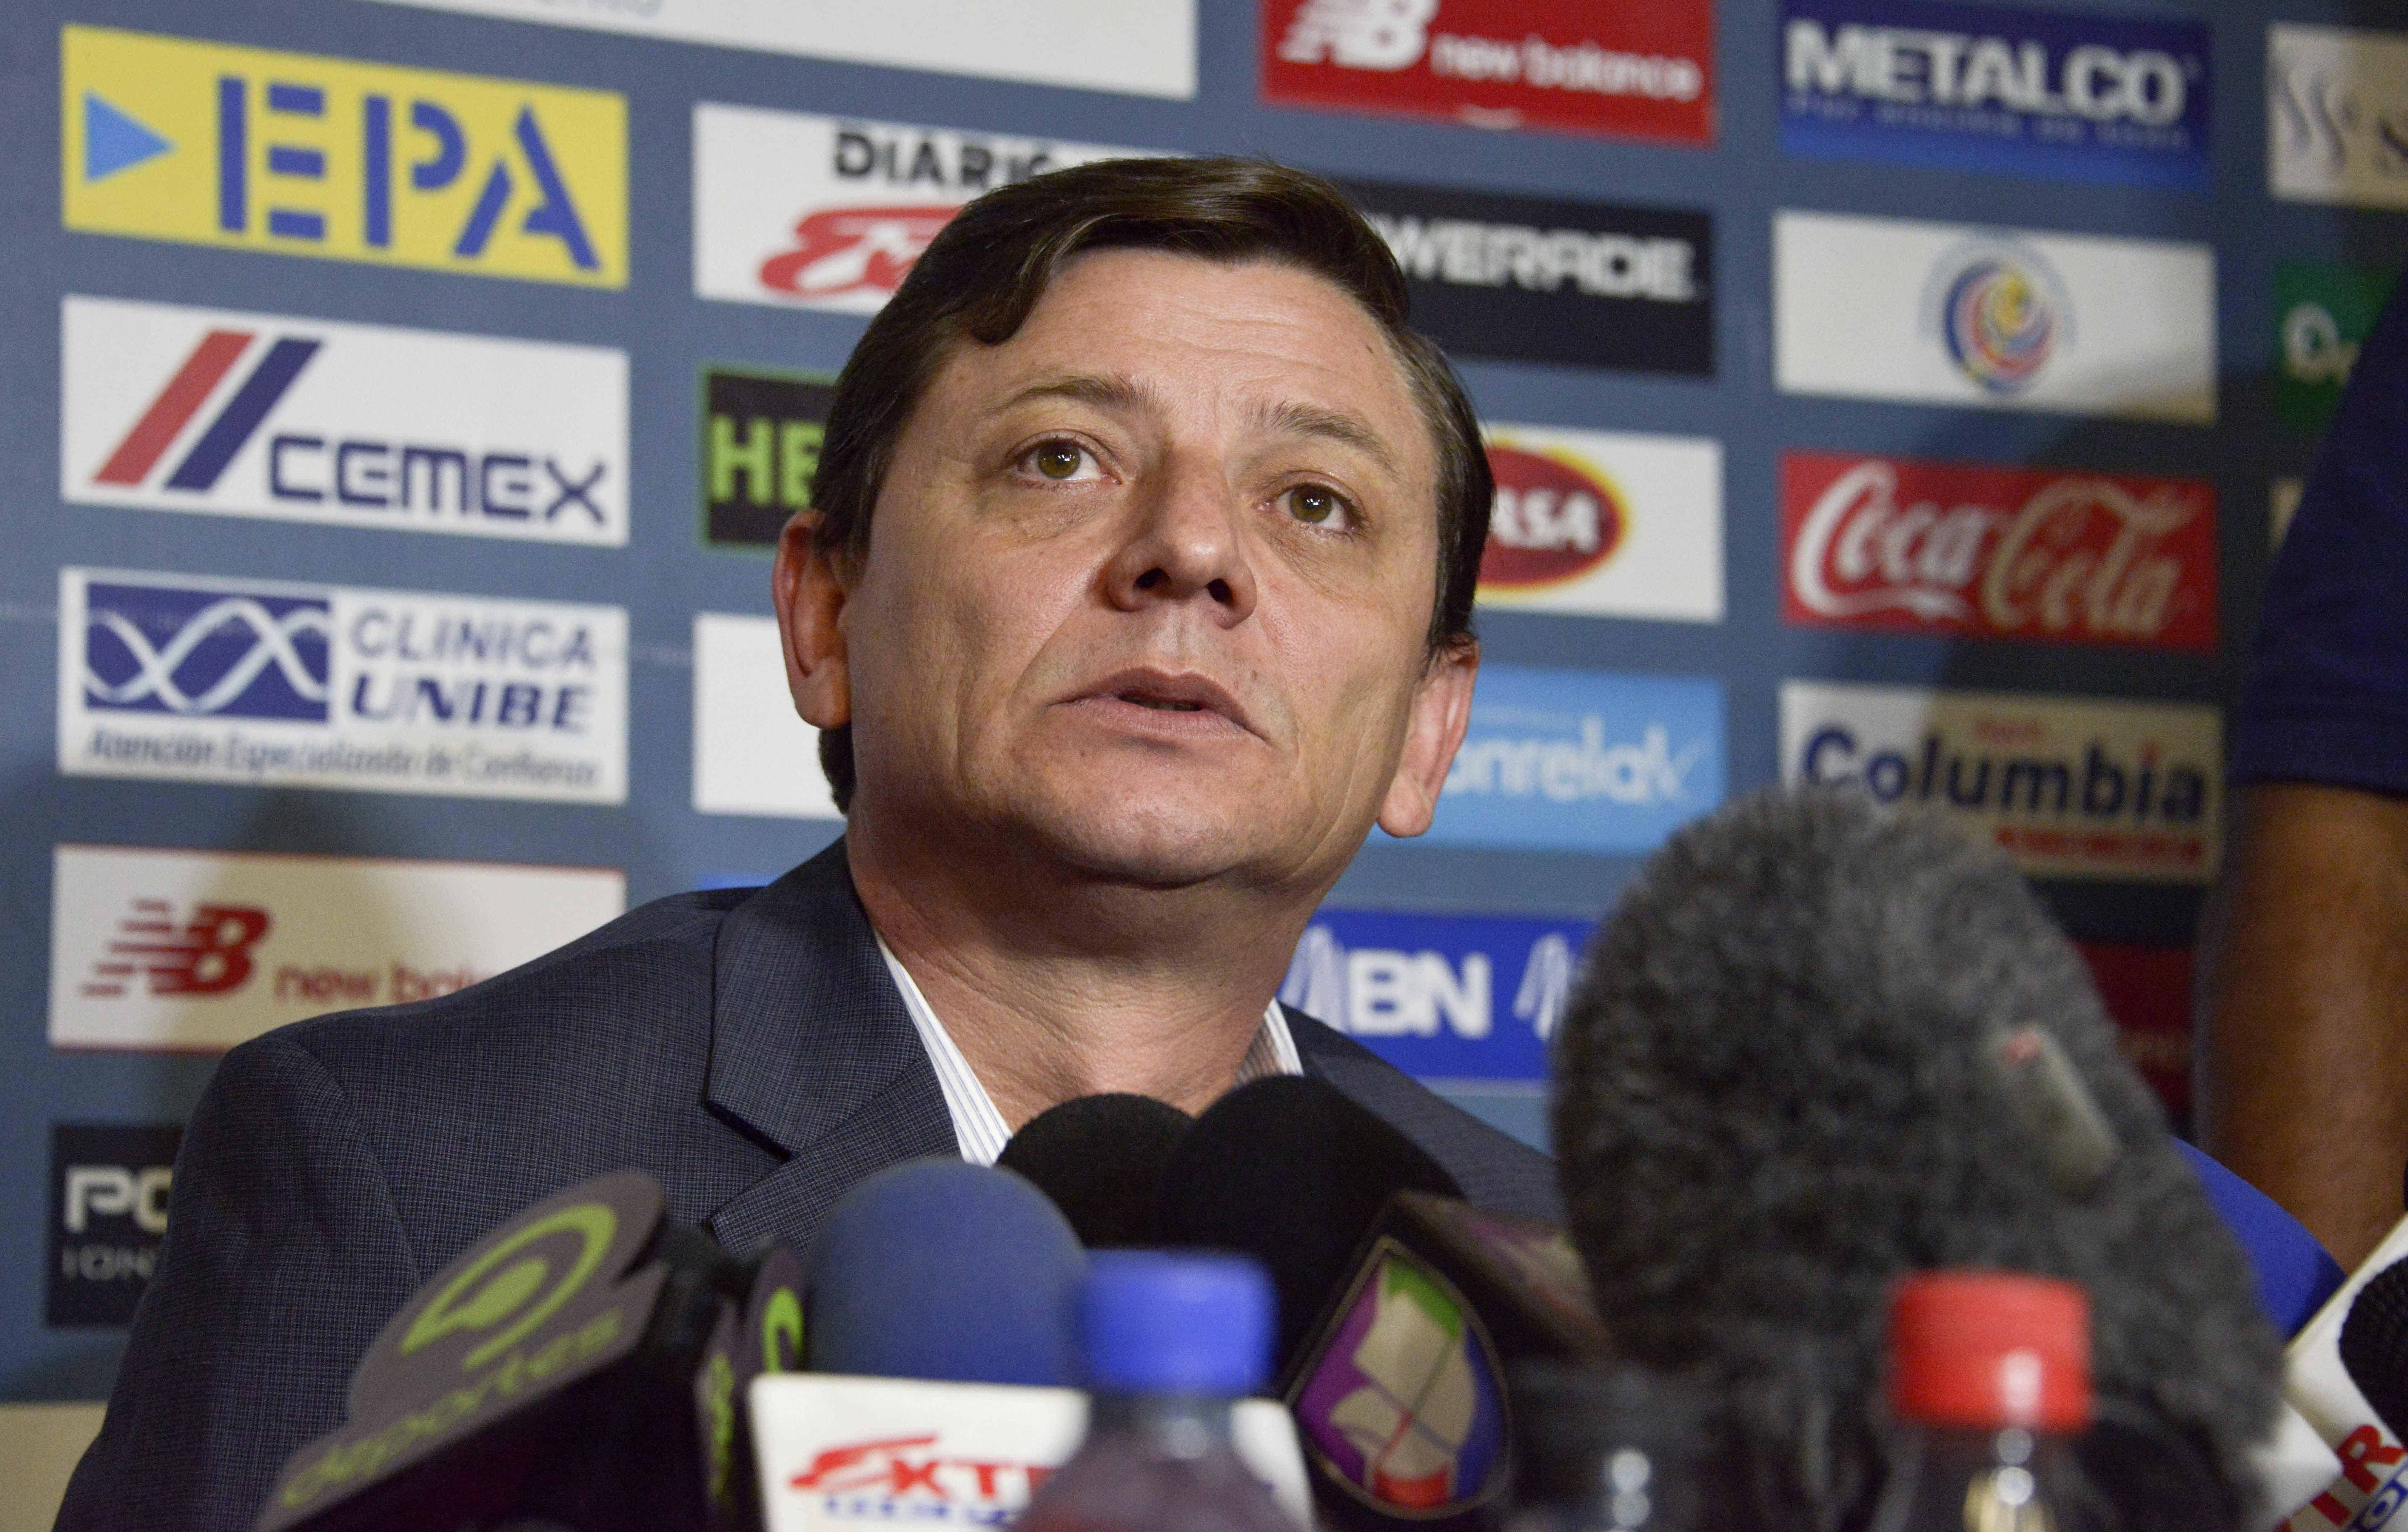 Costa Rican Football Federation acting President Jorge Hidalgo speaks during a press conference.